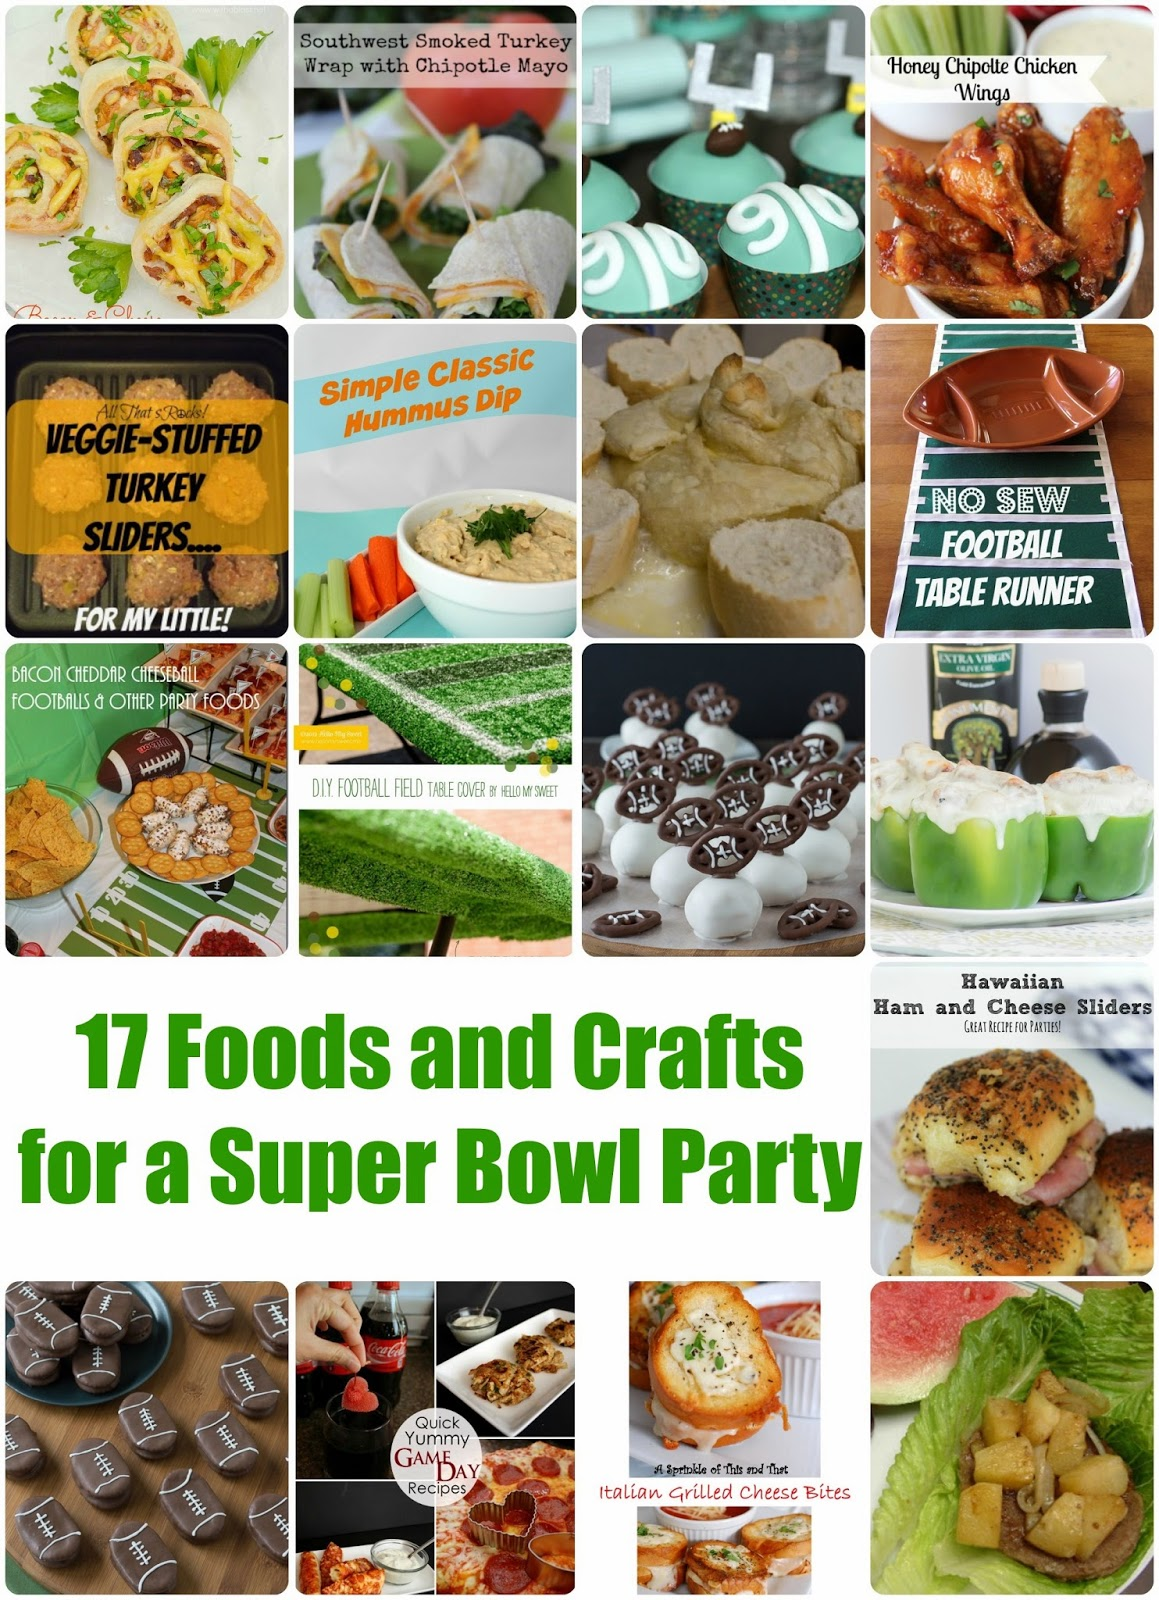 Crafty ideas for your food items this super bowl sunday - Kim Odegard Team Keller Williams Realty